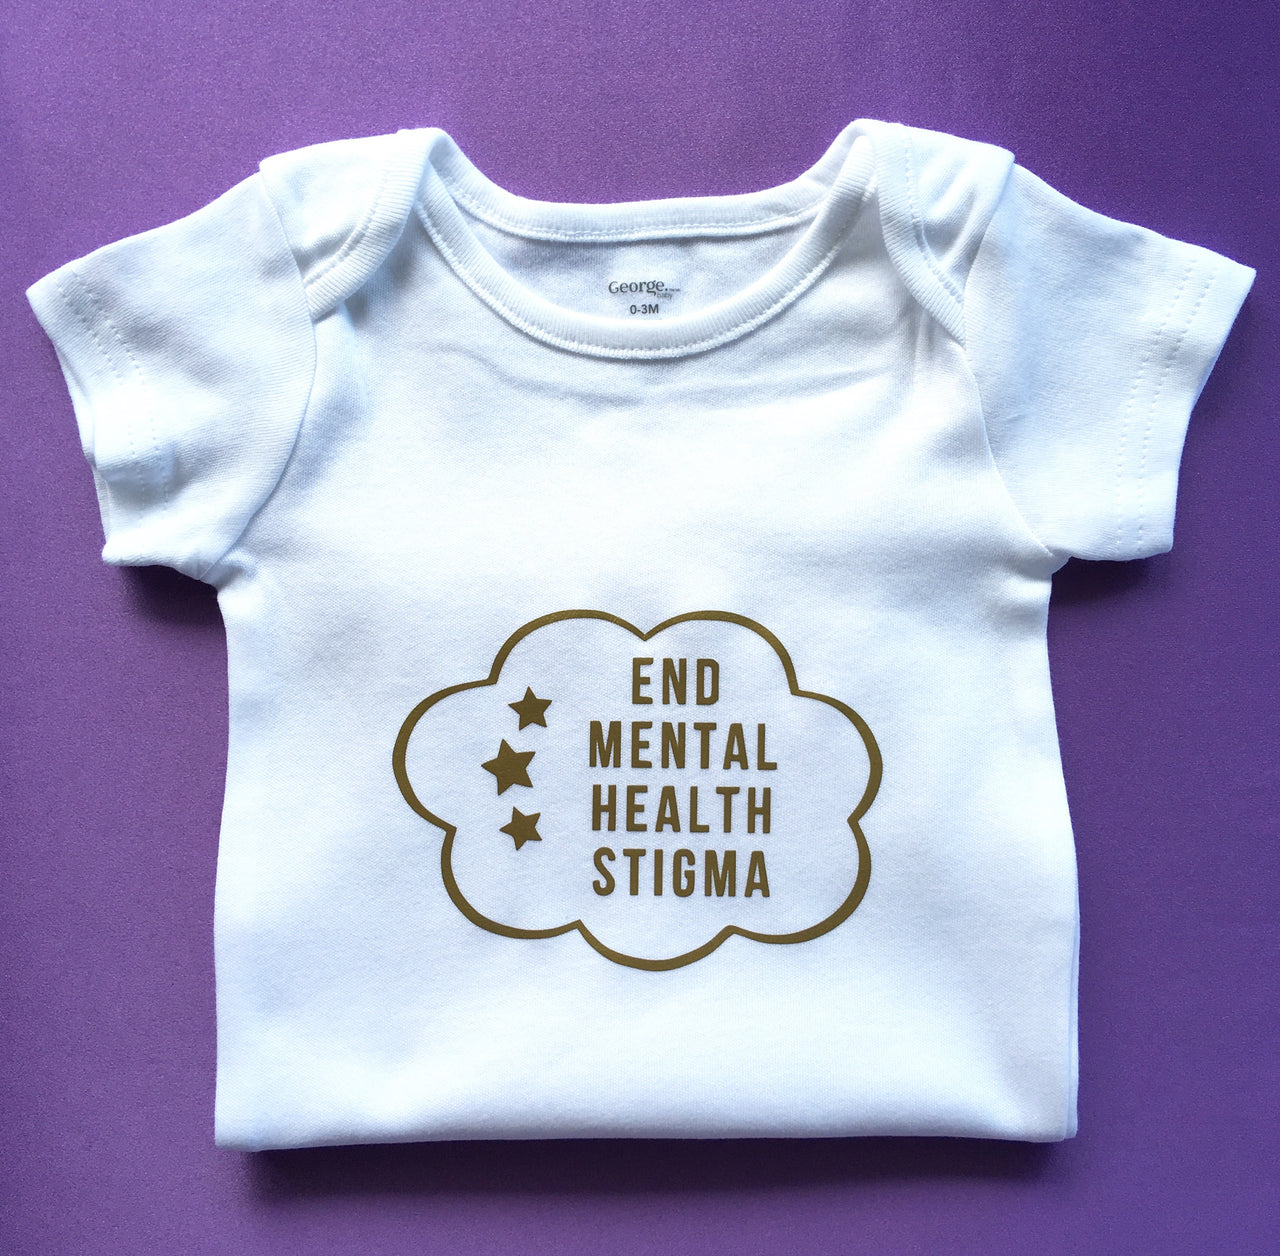 End mental health stigma baby bodysuit - Radical Buttons